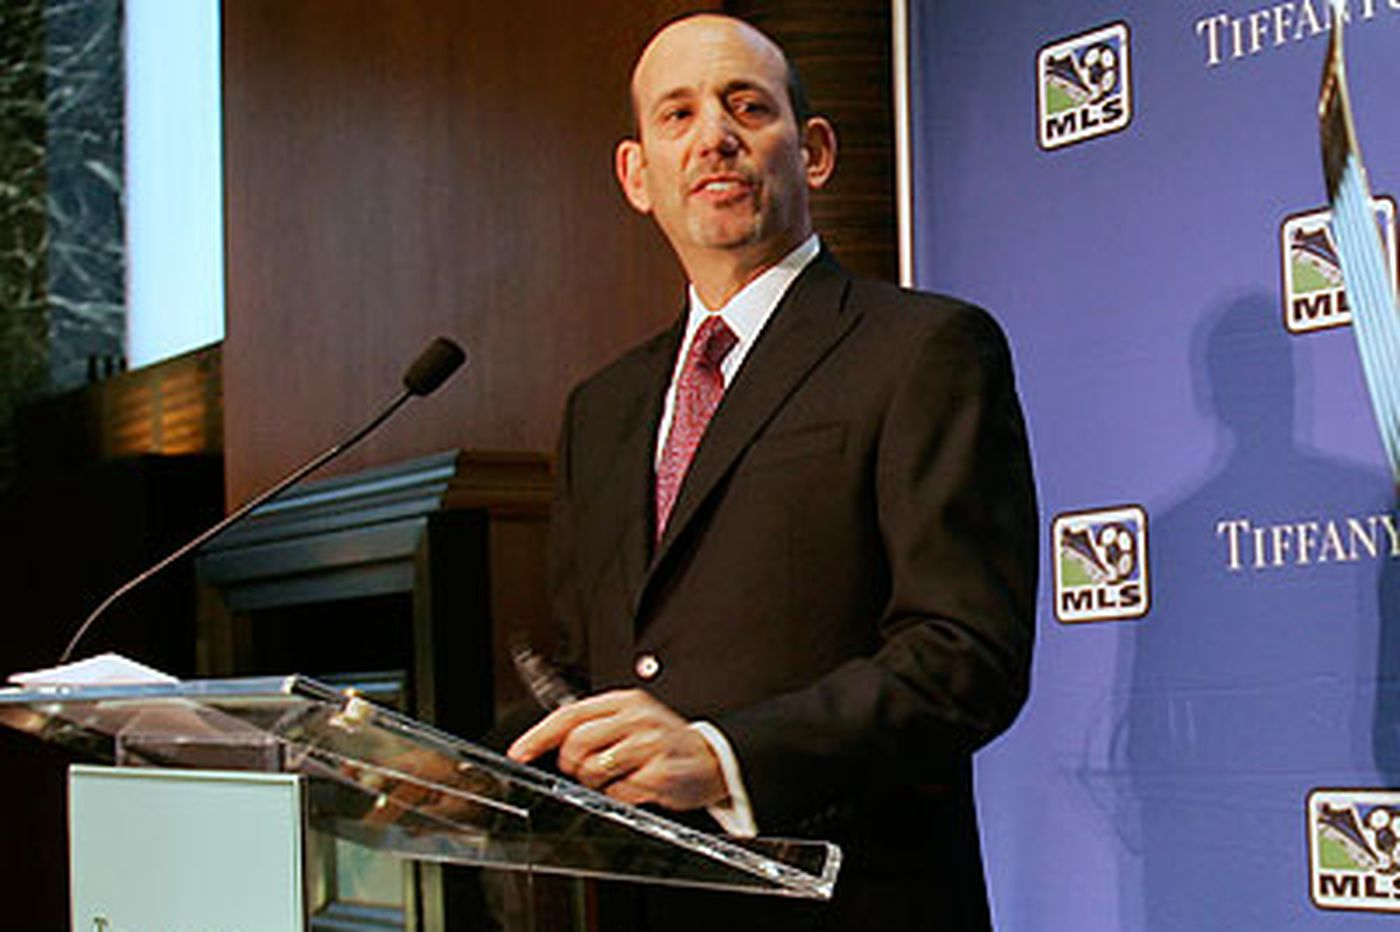 MLS labor negotiations could affect Union's opener in Seattle